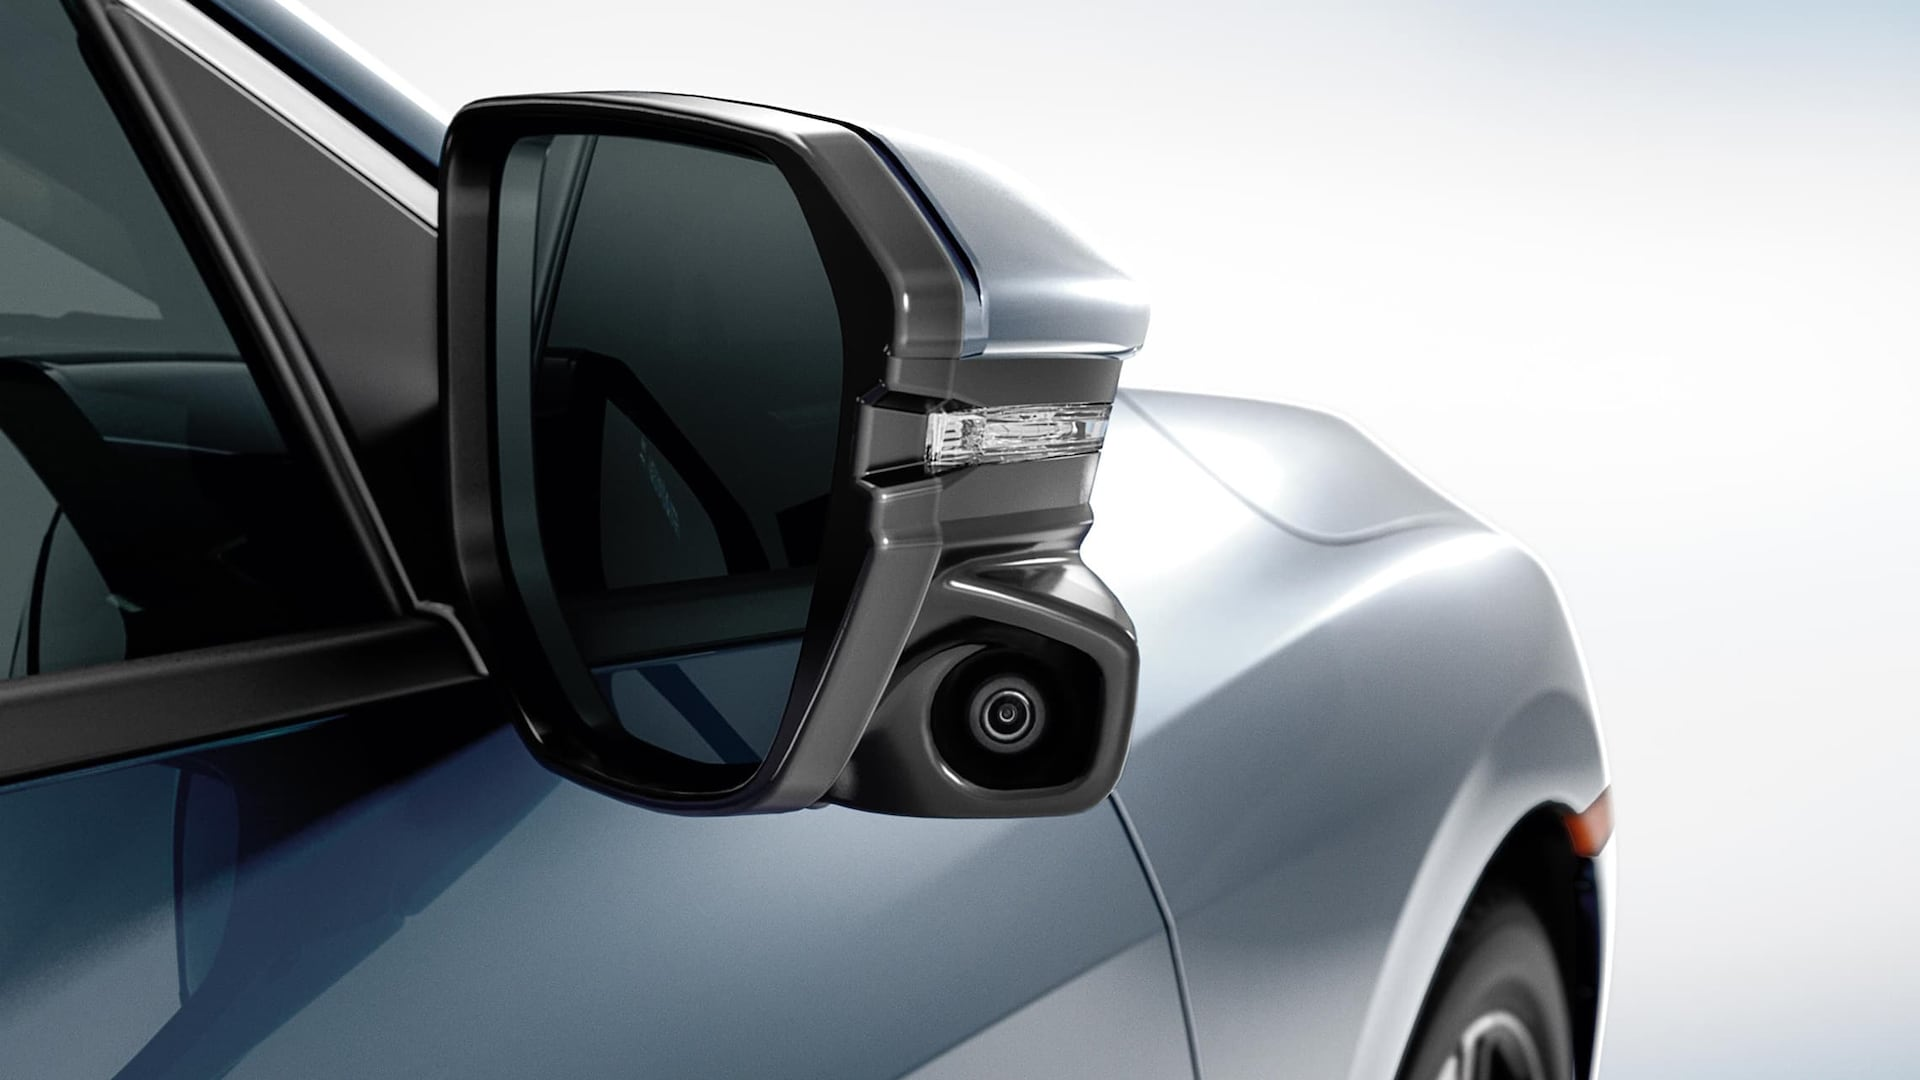 Honda LaneWatch™ camera detail on passenger's side mirror on 2019 Honda Civic Touring Sedan in Cosmic Blue Metallic.